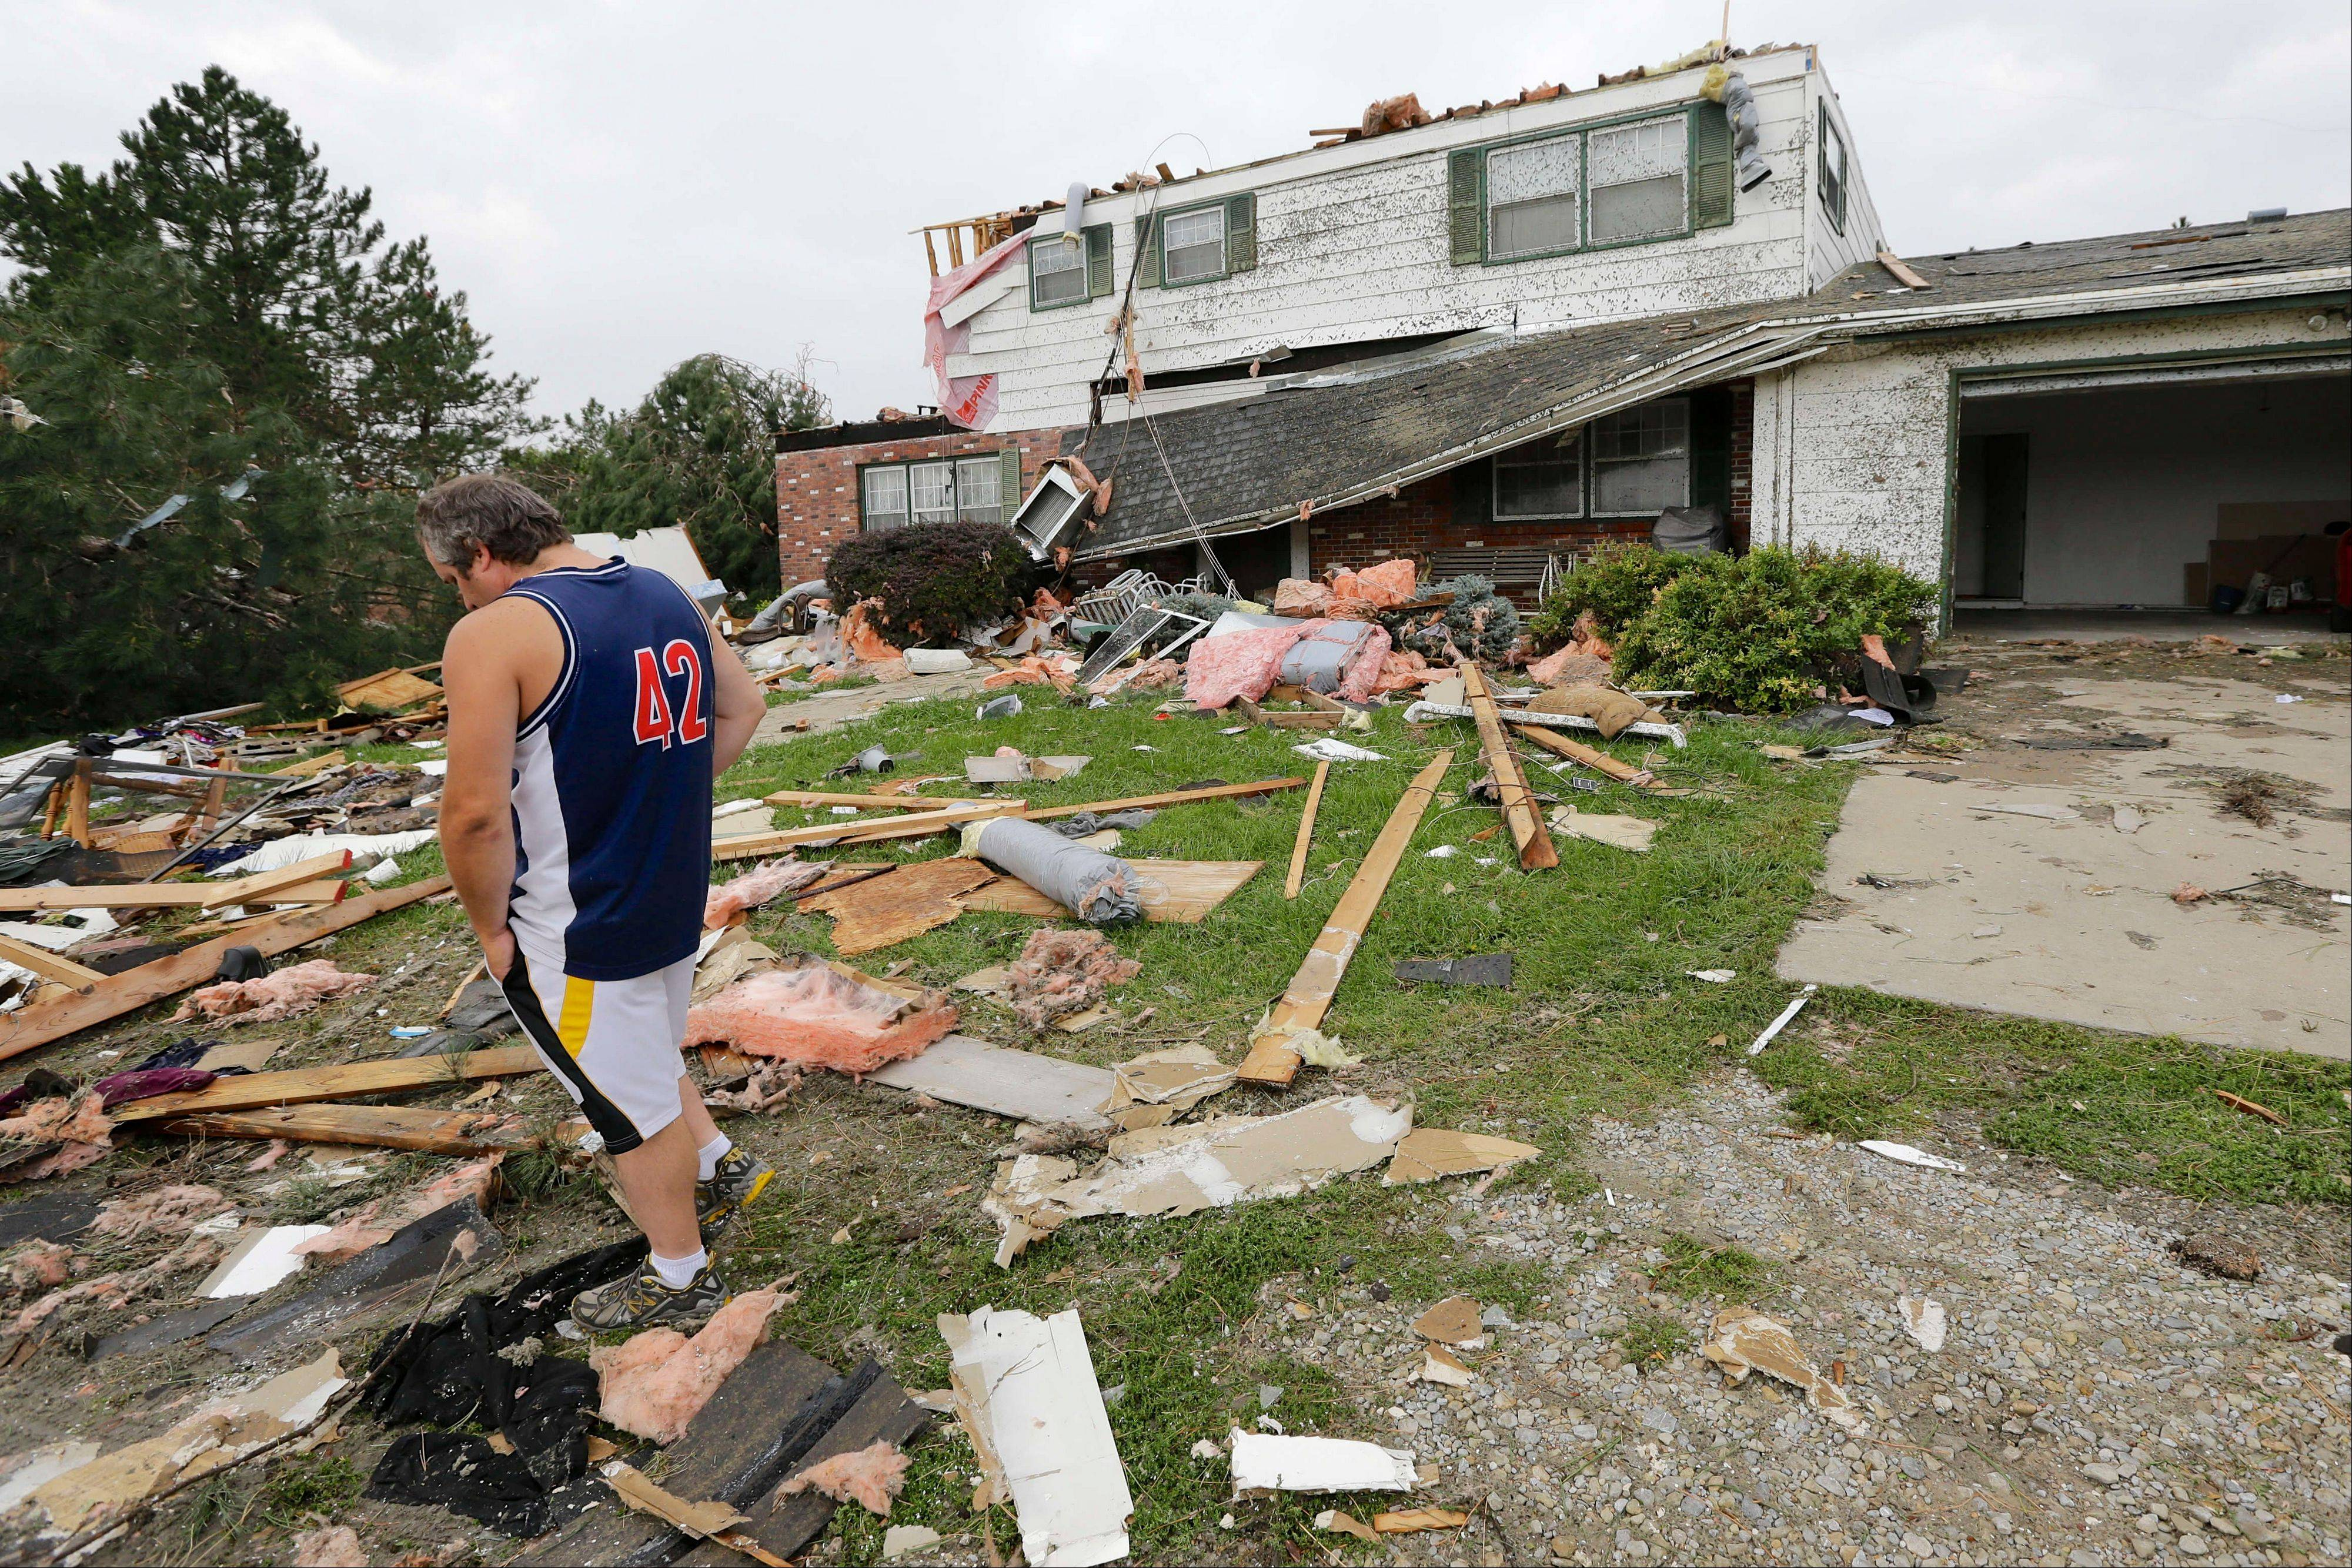 Travis Randall walks through the debris-strewn yard of his parent's home in Hickman, Neb., Friday, Oct. 4, 2013, after it was struck by a tornado. Powerful storms crawled into the Midwest on Friday, dumping heavy snow in South Dakota, spawning a tornado in Nebraska and threatening dangerous thunderstorms from Oklahoma to Wisconsin.